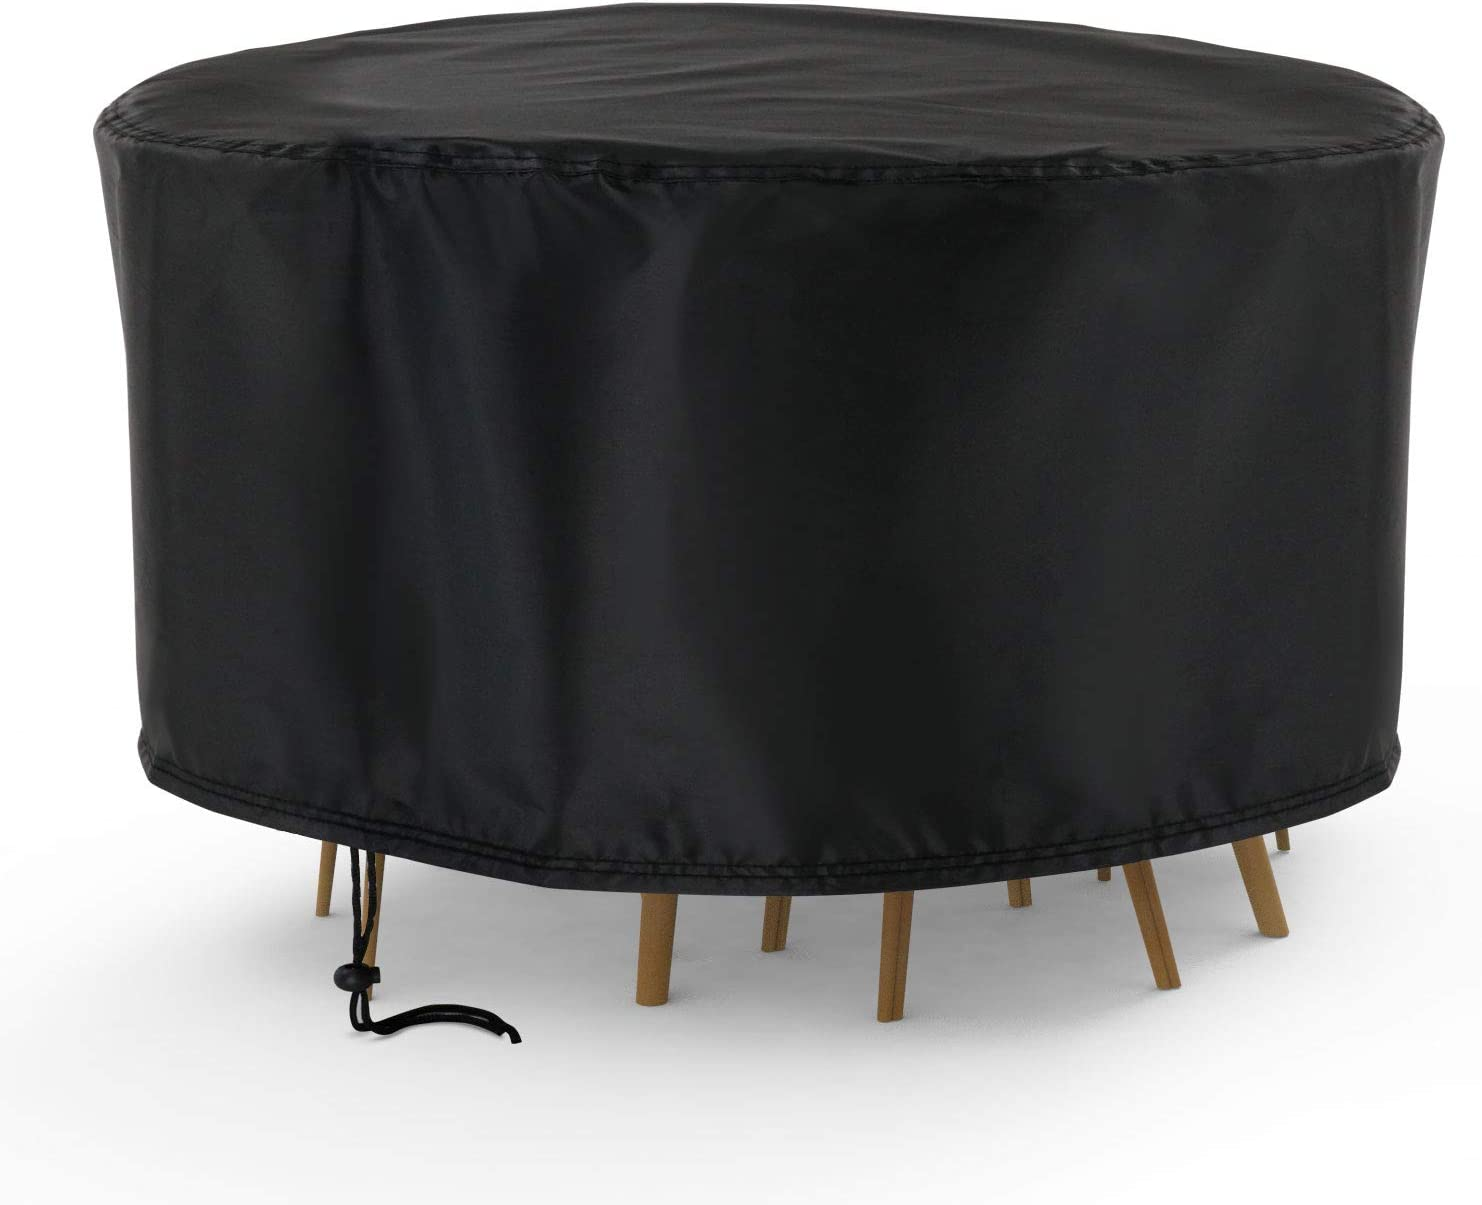 Hengme Round Patio Outdoor Furniture Covers, 90 Inch Waterproof Table Chair Set Covers, UV Resistant, Dustproof - Black (90''Dia x 43''H)